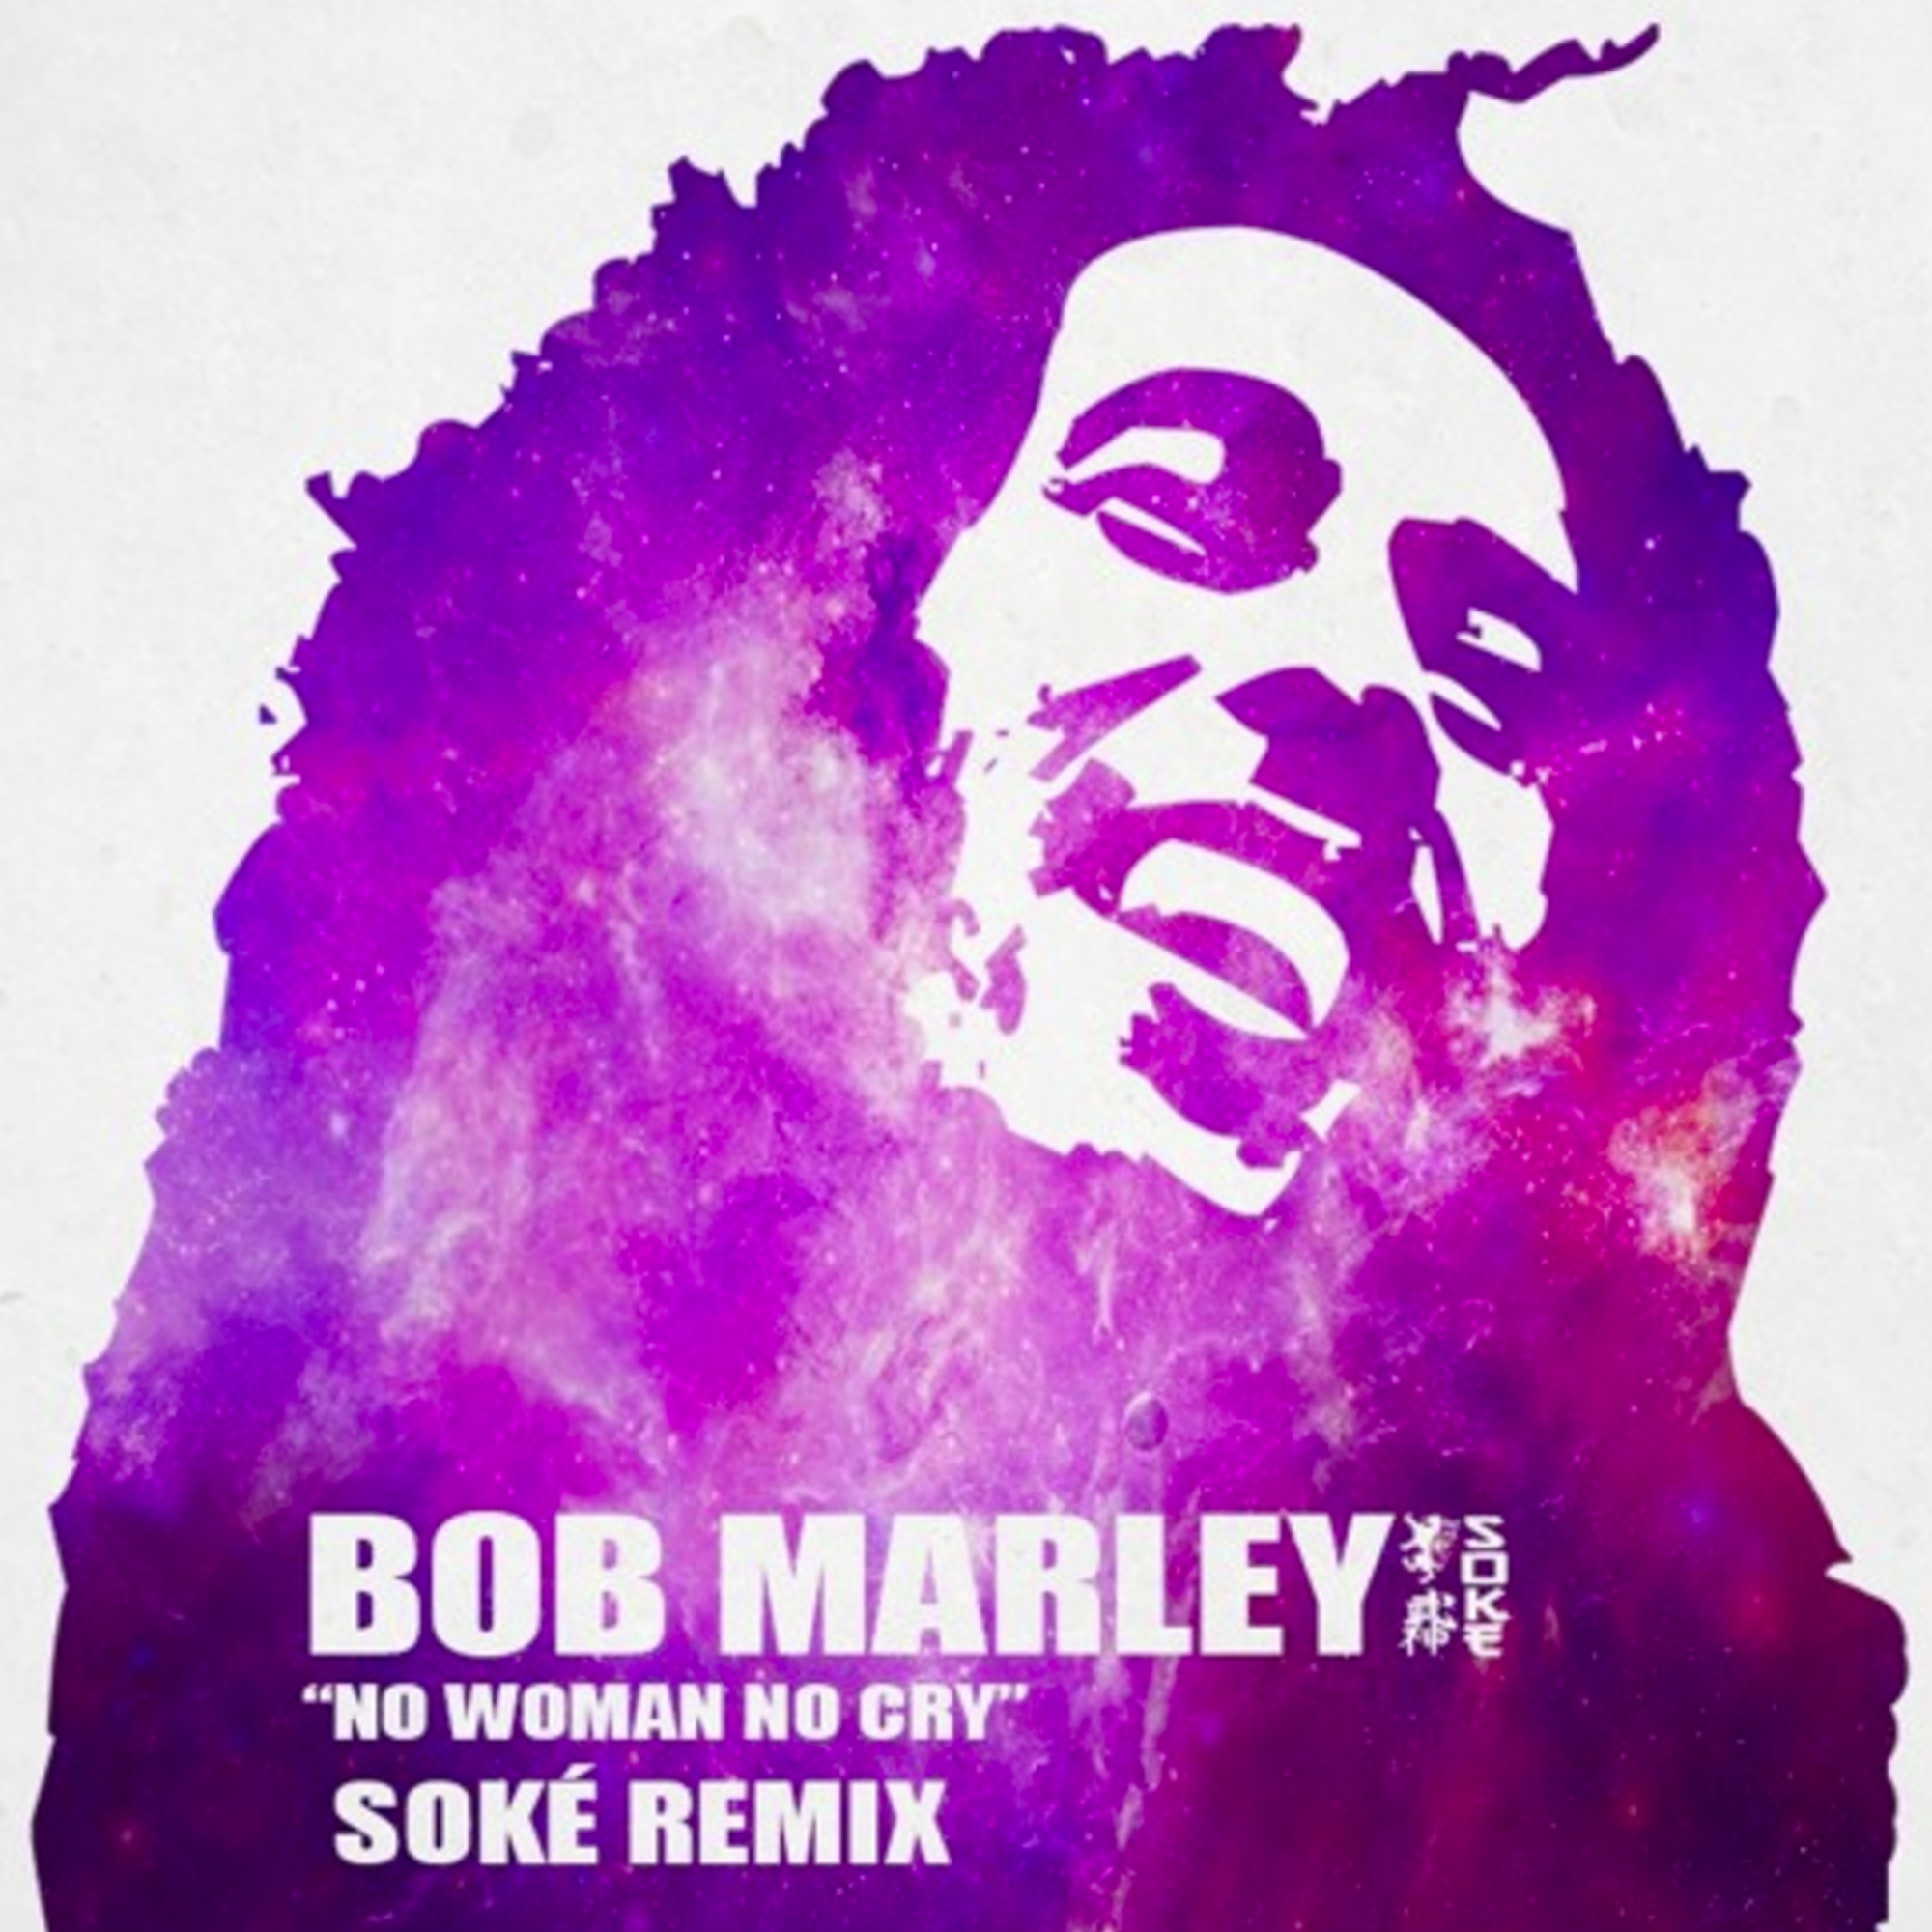 Bob Marley Cry Song Mp3 Download: No Woman No Cry (Soke Remix)